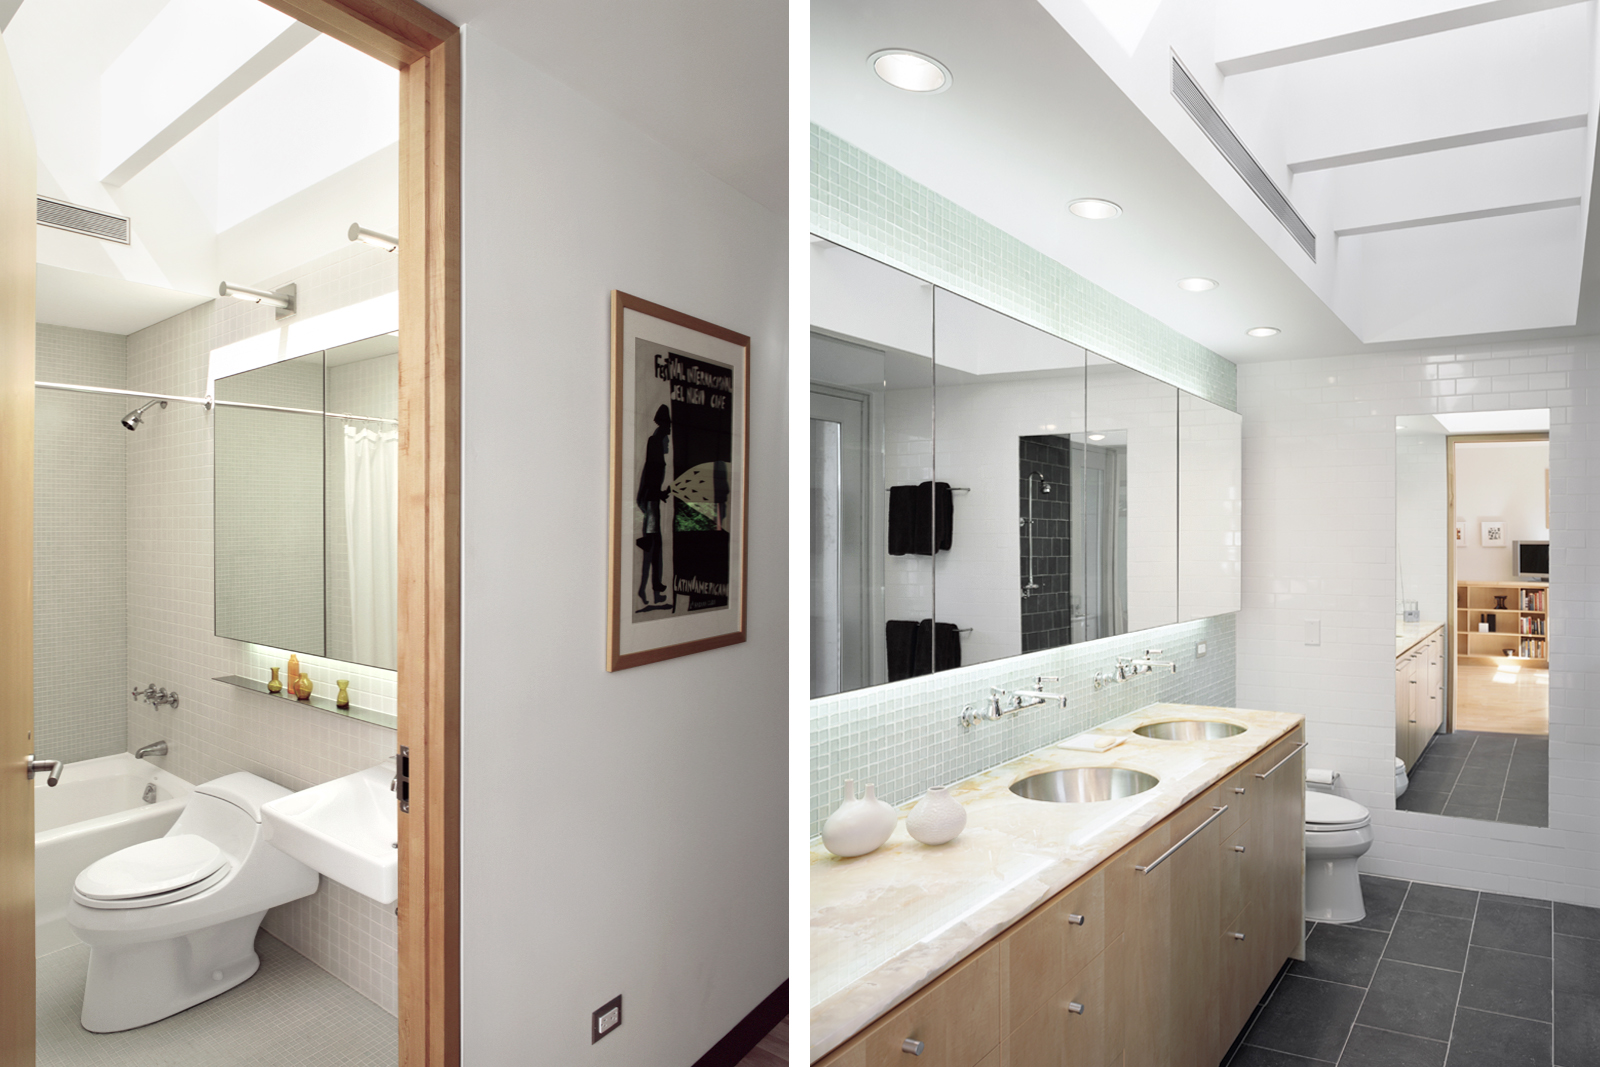 14-res4-resolution-4-architecture-modern-home-residential-lakeside-house-interior-bath-room.jpg